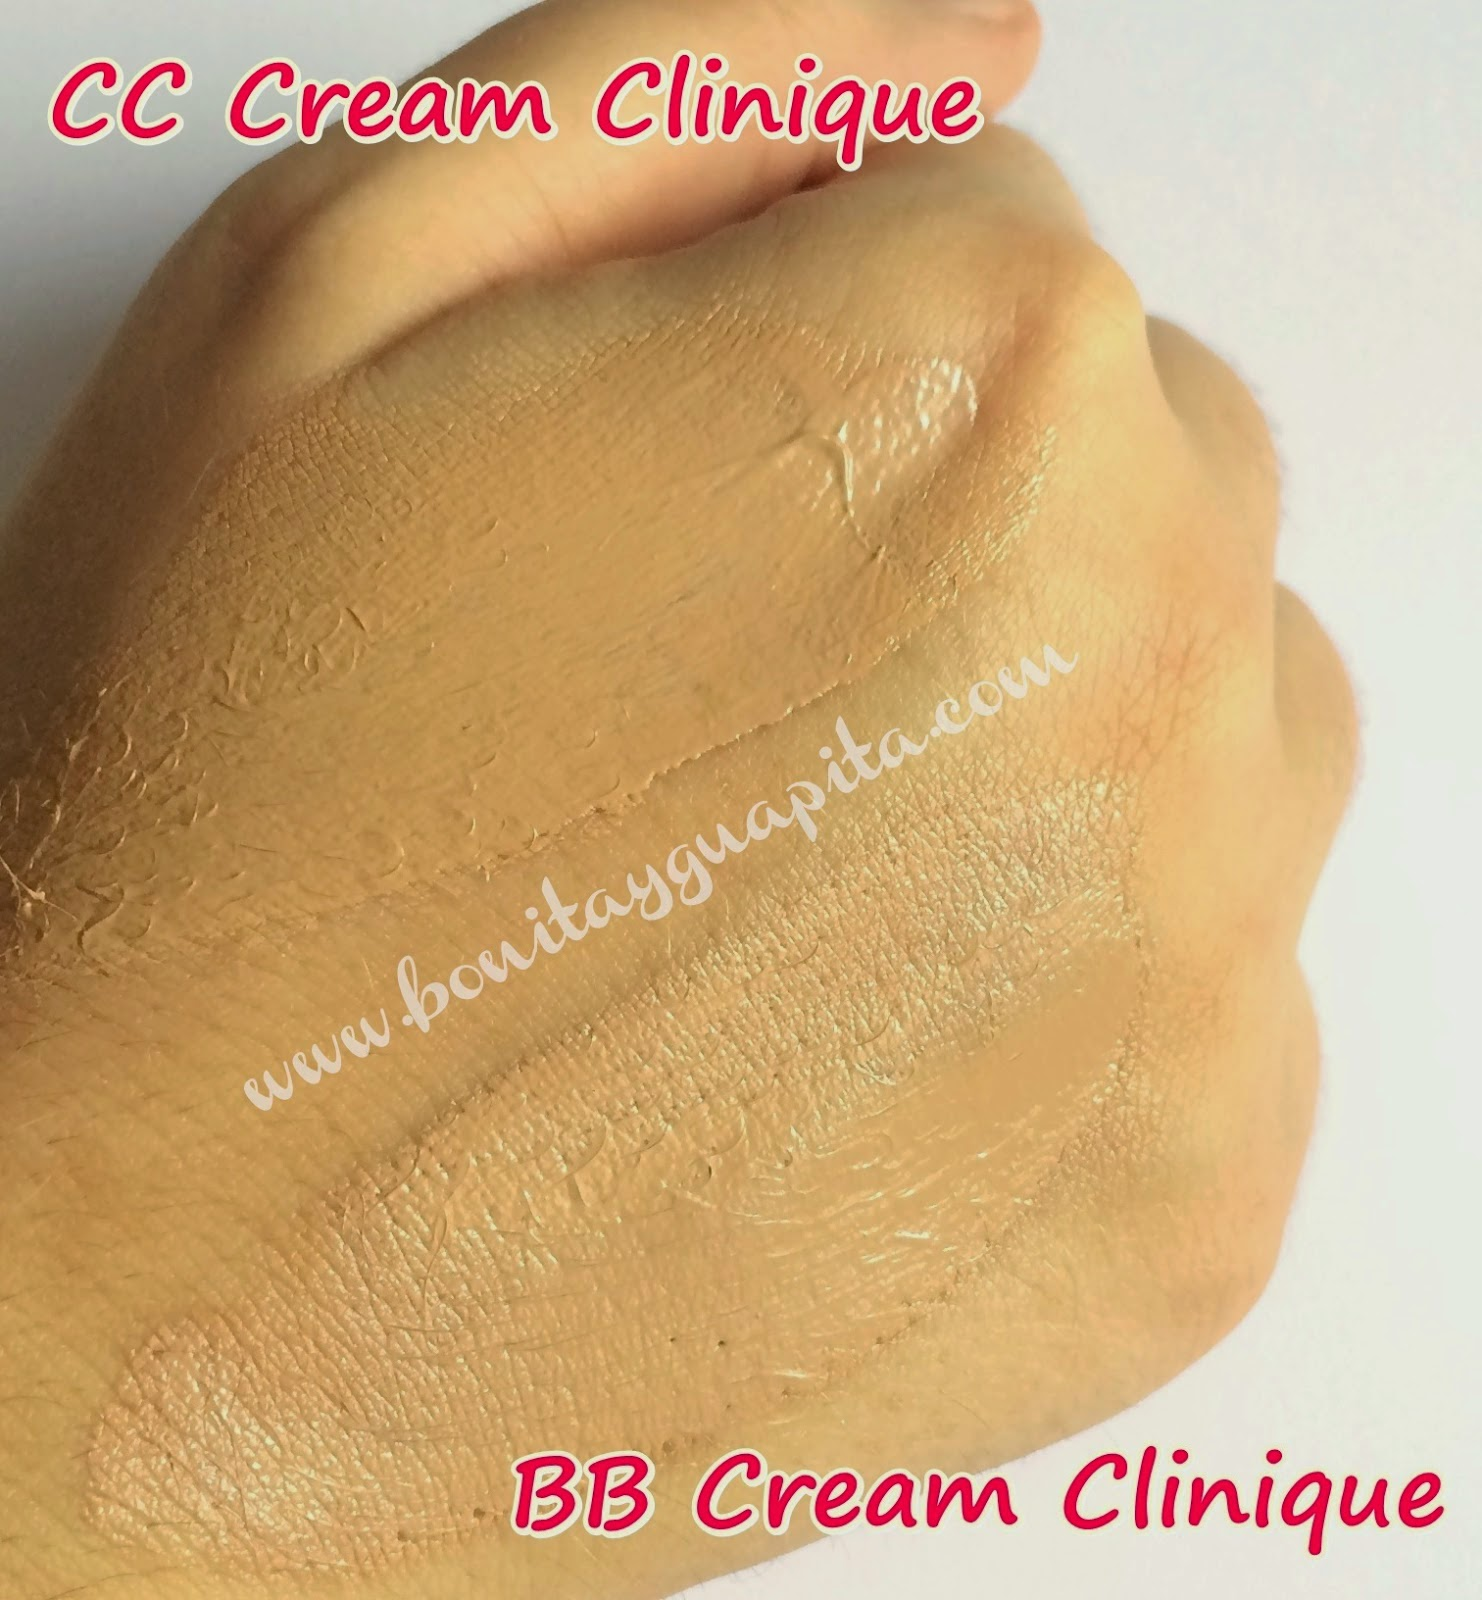 cc cream clinique or bb cream